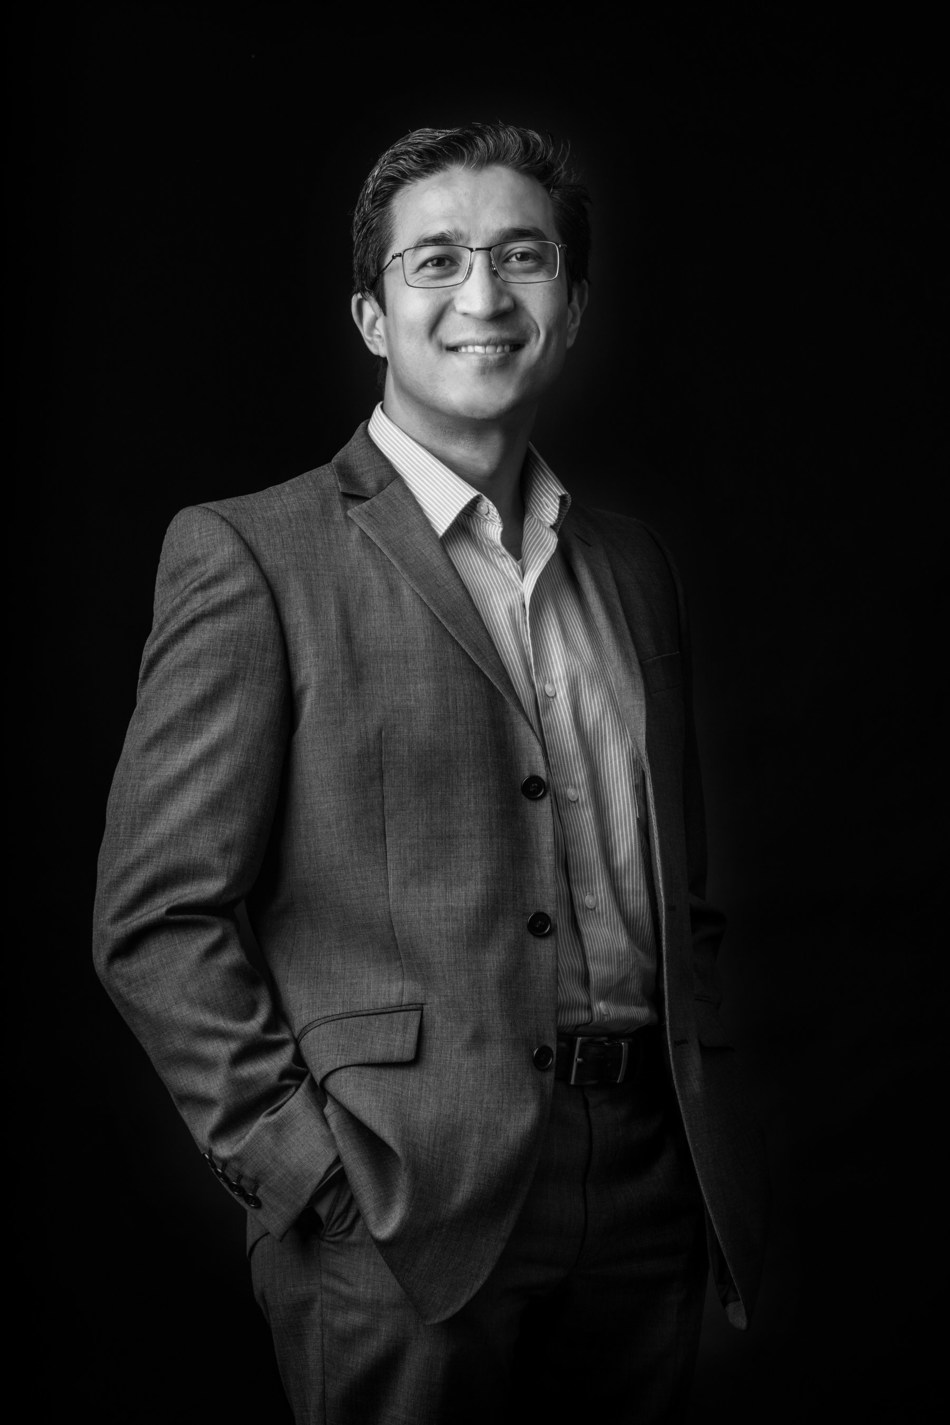 Rasu B. Shrestha, MD. Newly appointed Atrium Health Executive Vice President and Chief Strategy Officer.